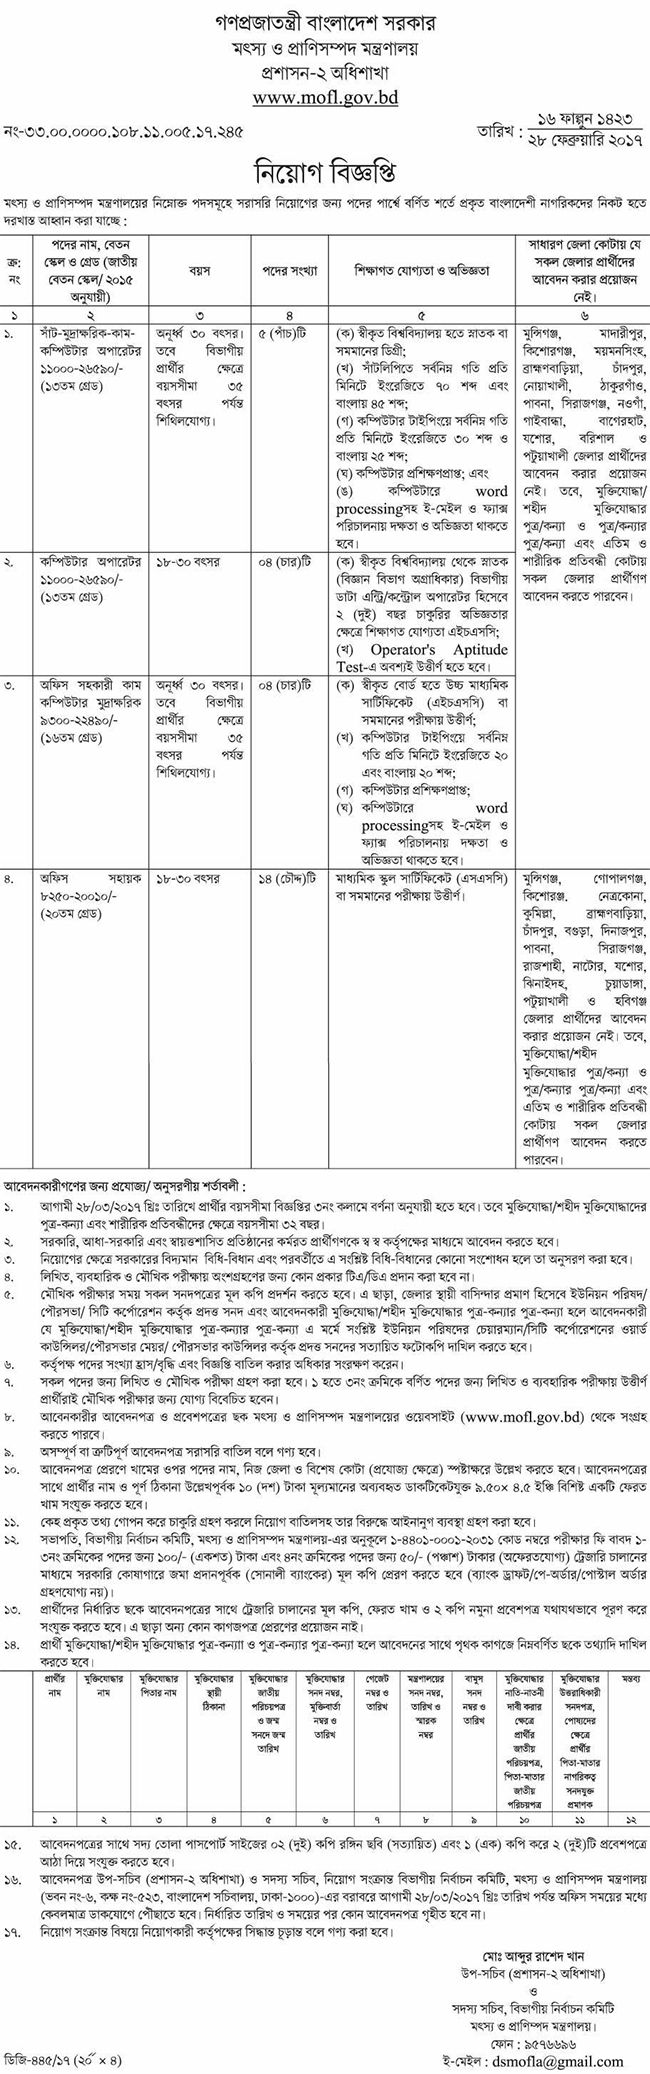 Ministry of Fisheries And Livestock Job Circular